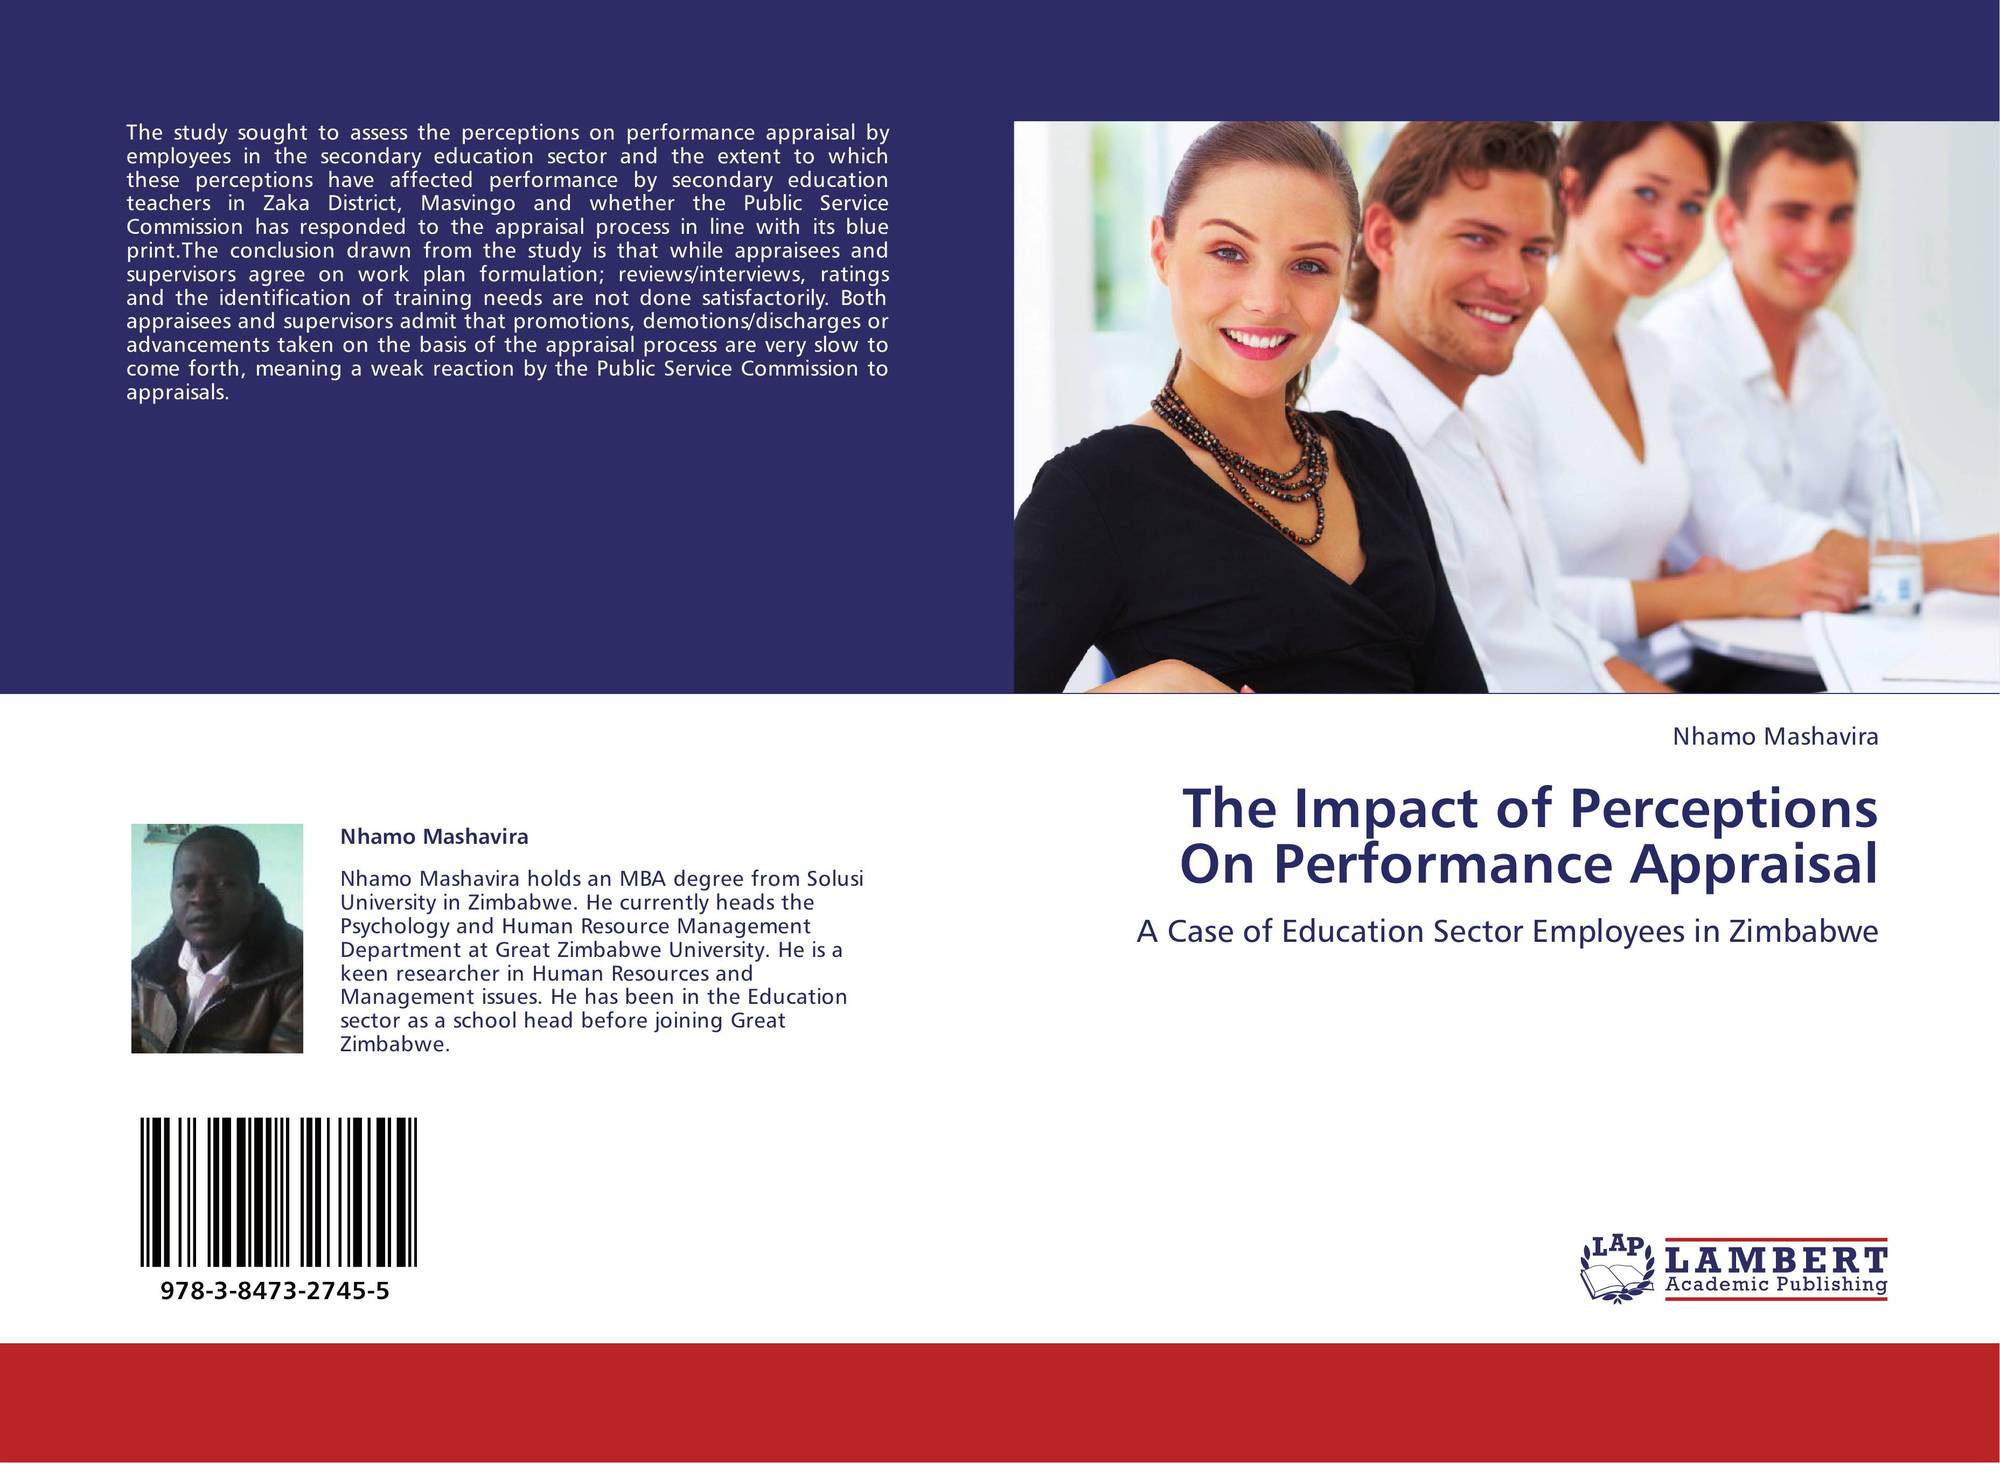 a study on perception of employee about performance appraisal effectiveness and its impact on employ Gives an employee a performance appraisal with a view of affecting the employee's self perception, and the employee's perception of the manager's ability to assess performance we examine how performance appraisals.